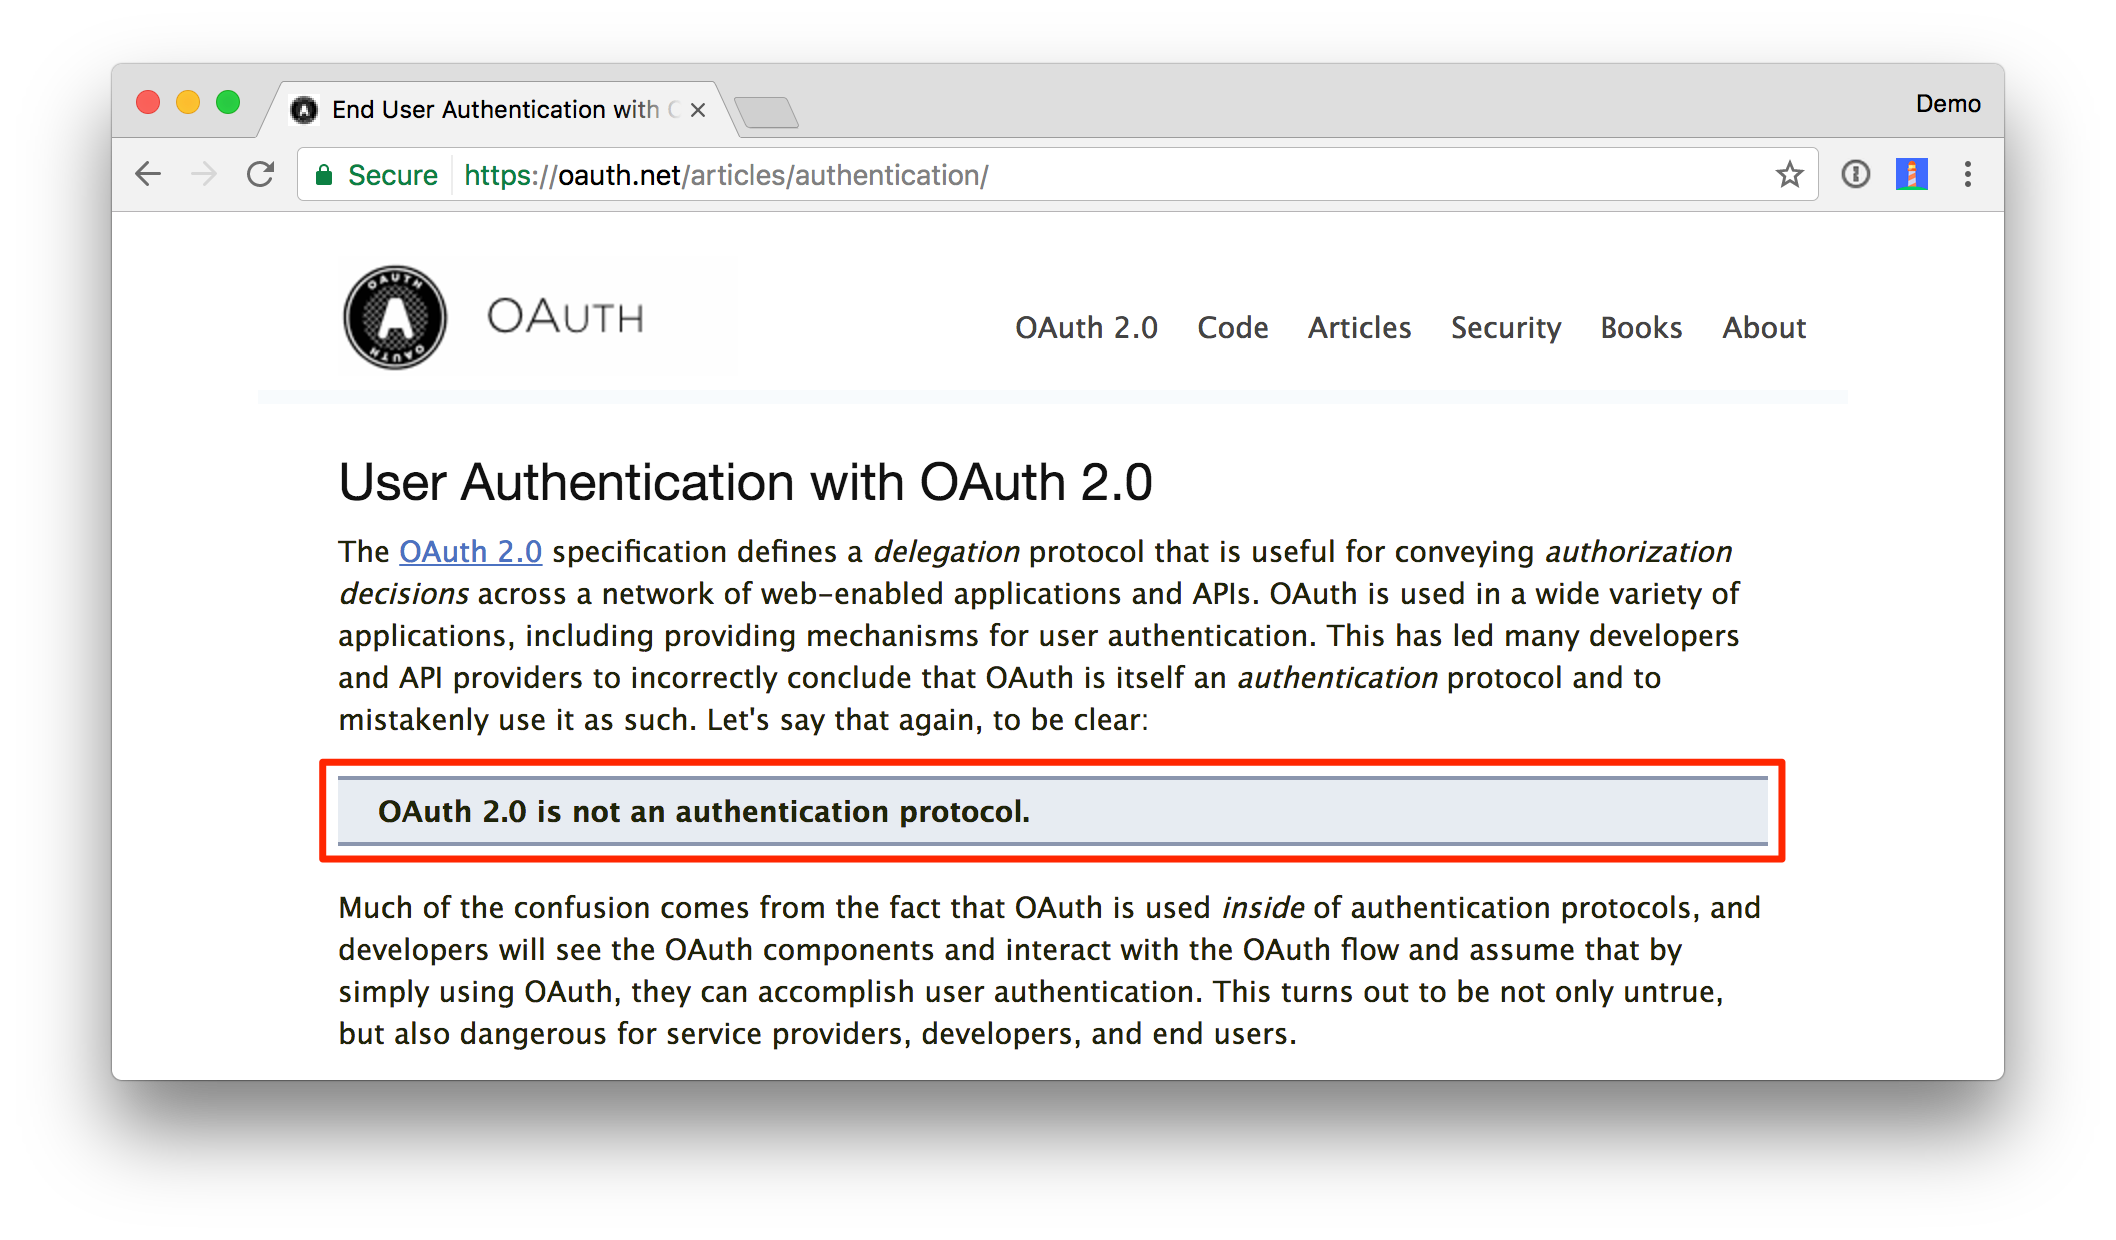 OAuth 2.0 is not an authentication protocol